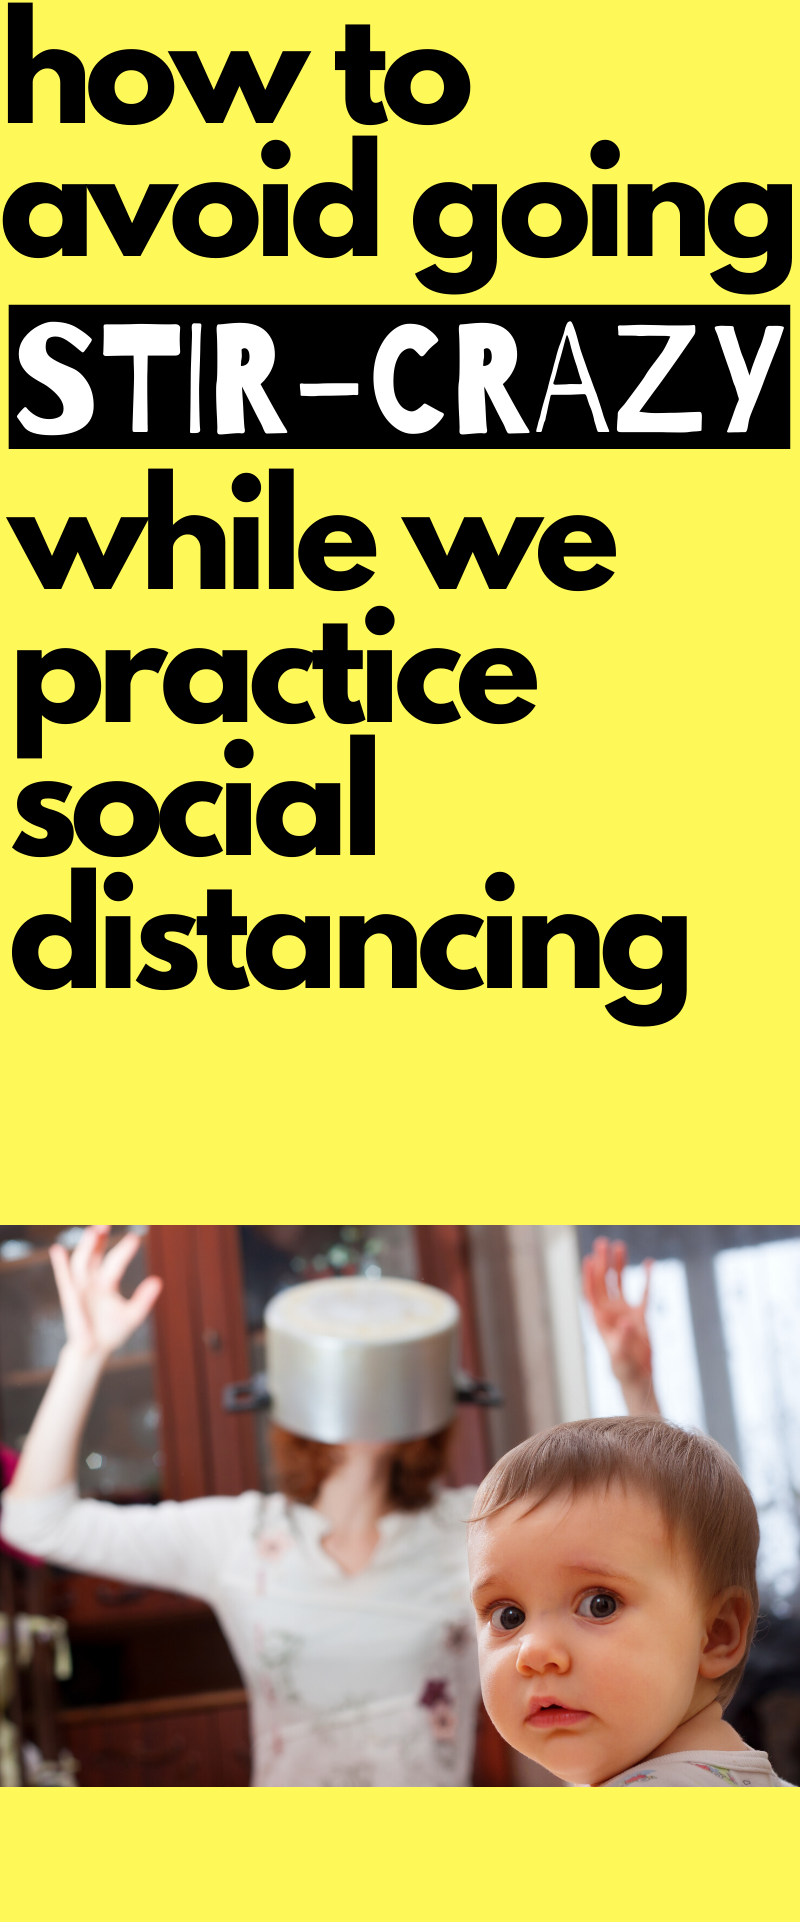 How To Avoid Going Stir-Crazy While We Practice Social Distancing